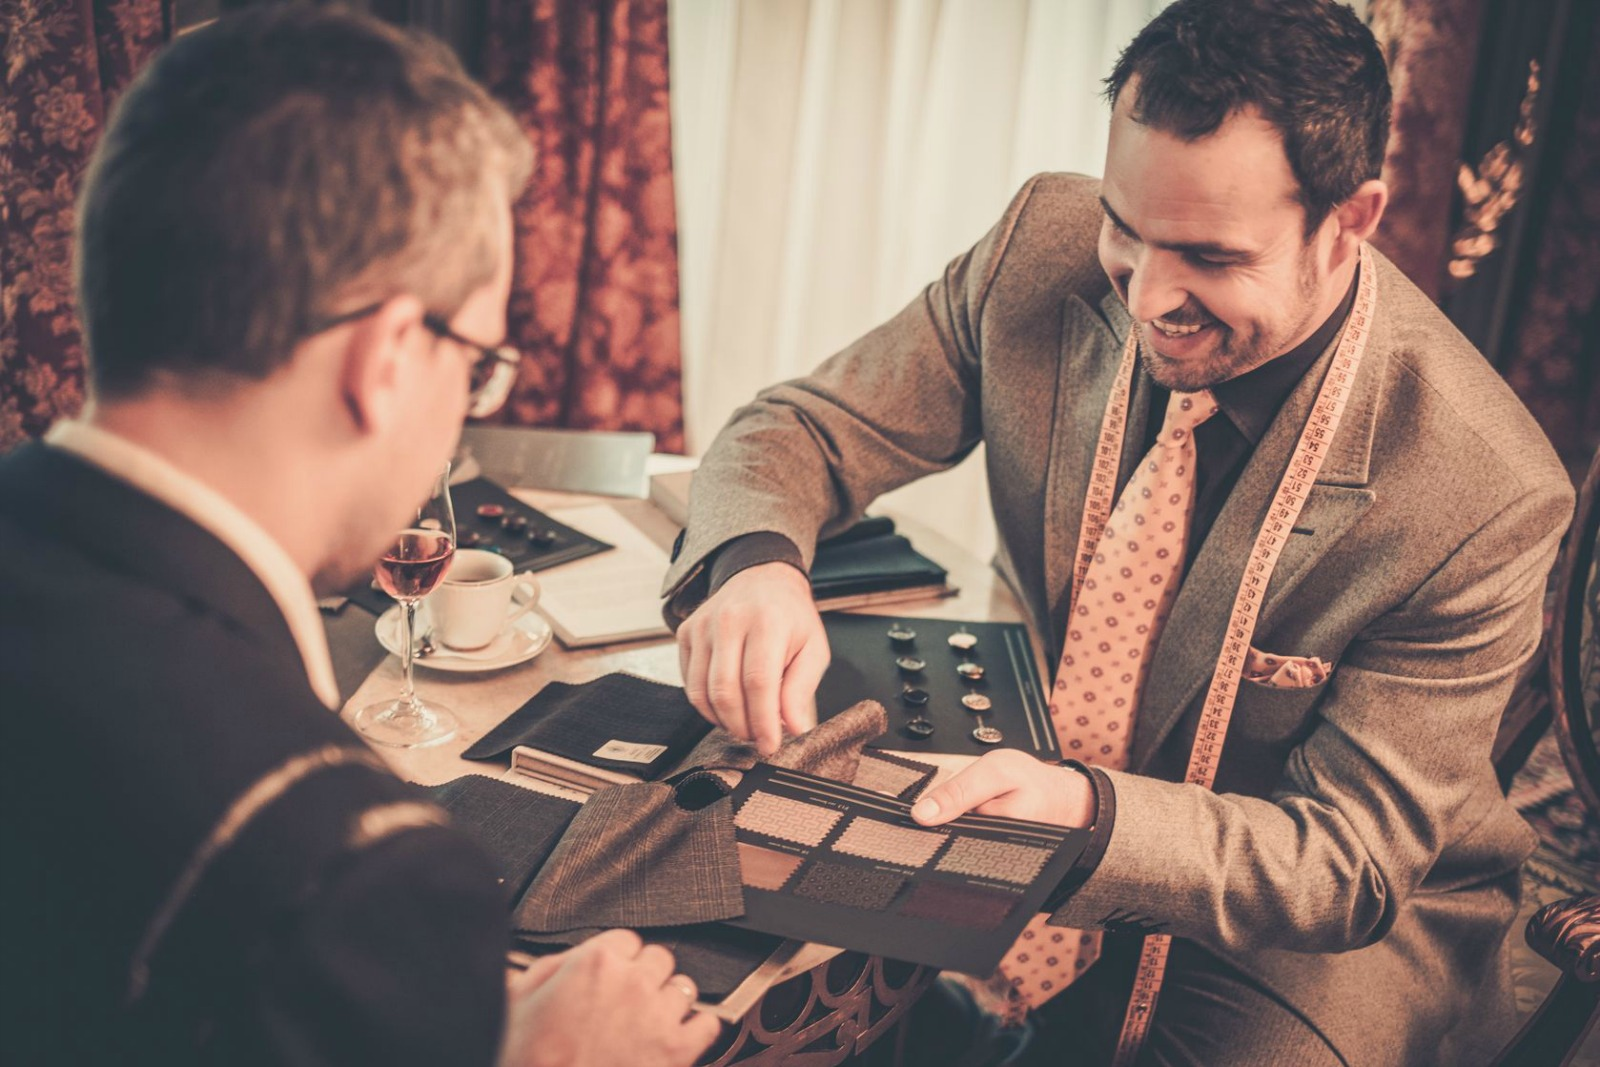 bespoke suits vs off the rack